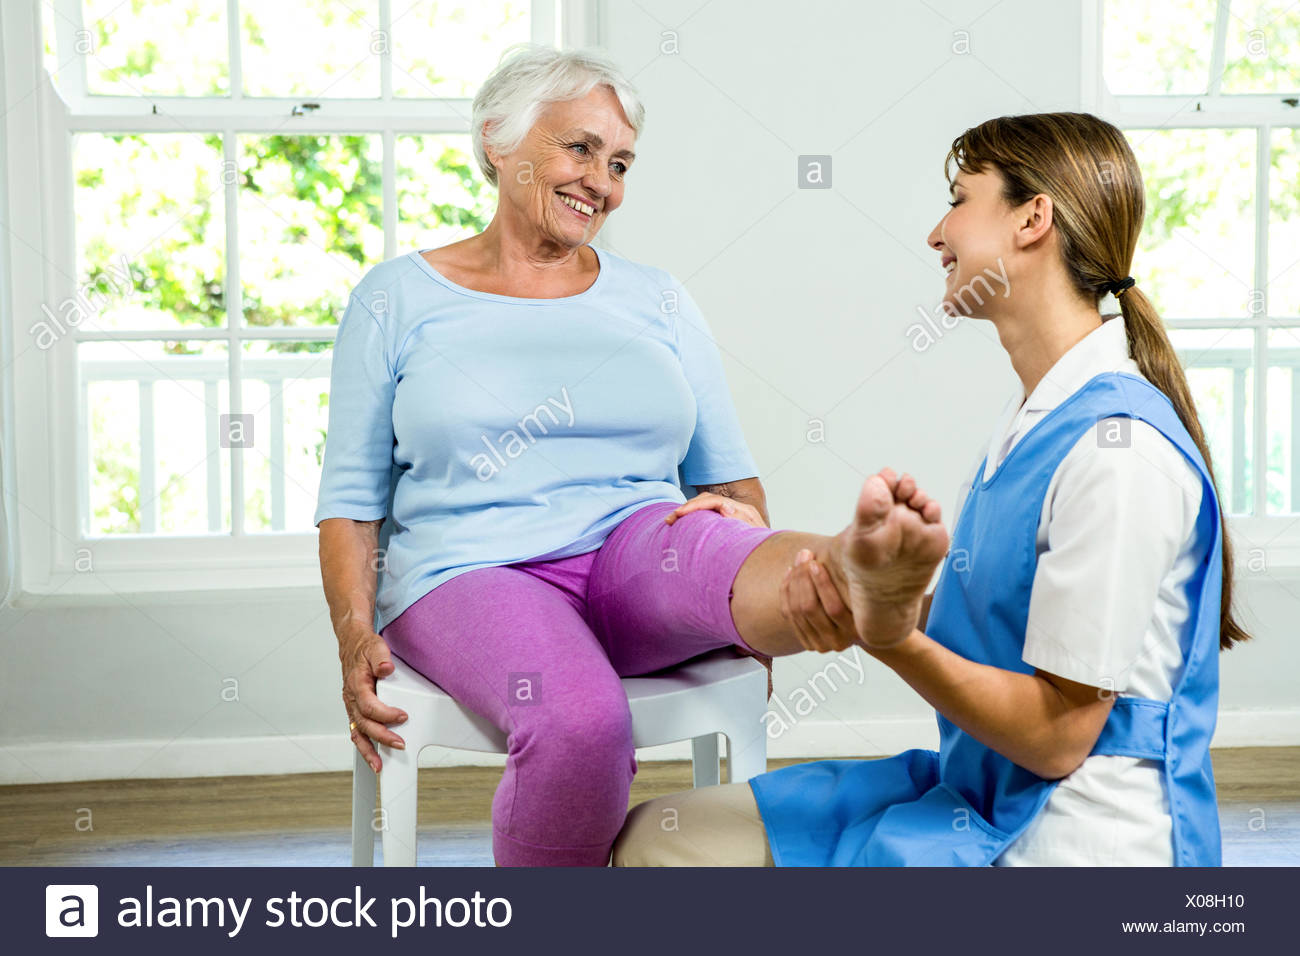 Happy nurse assisting man Photo Stock